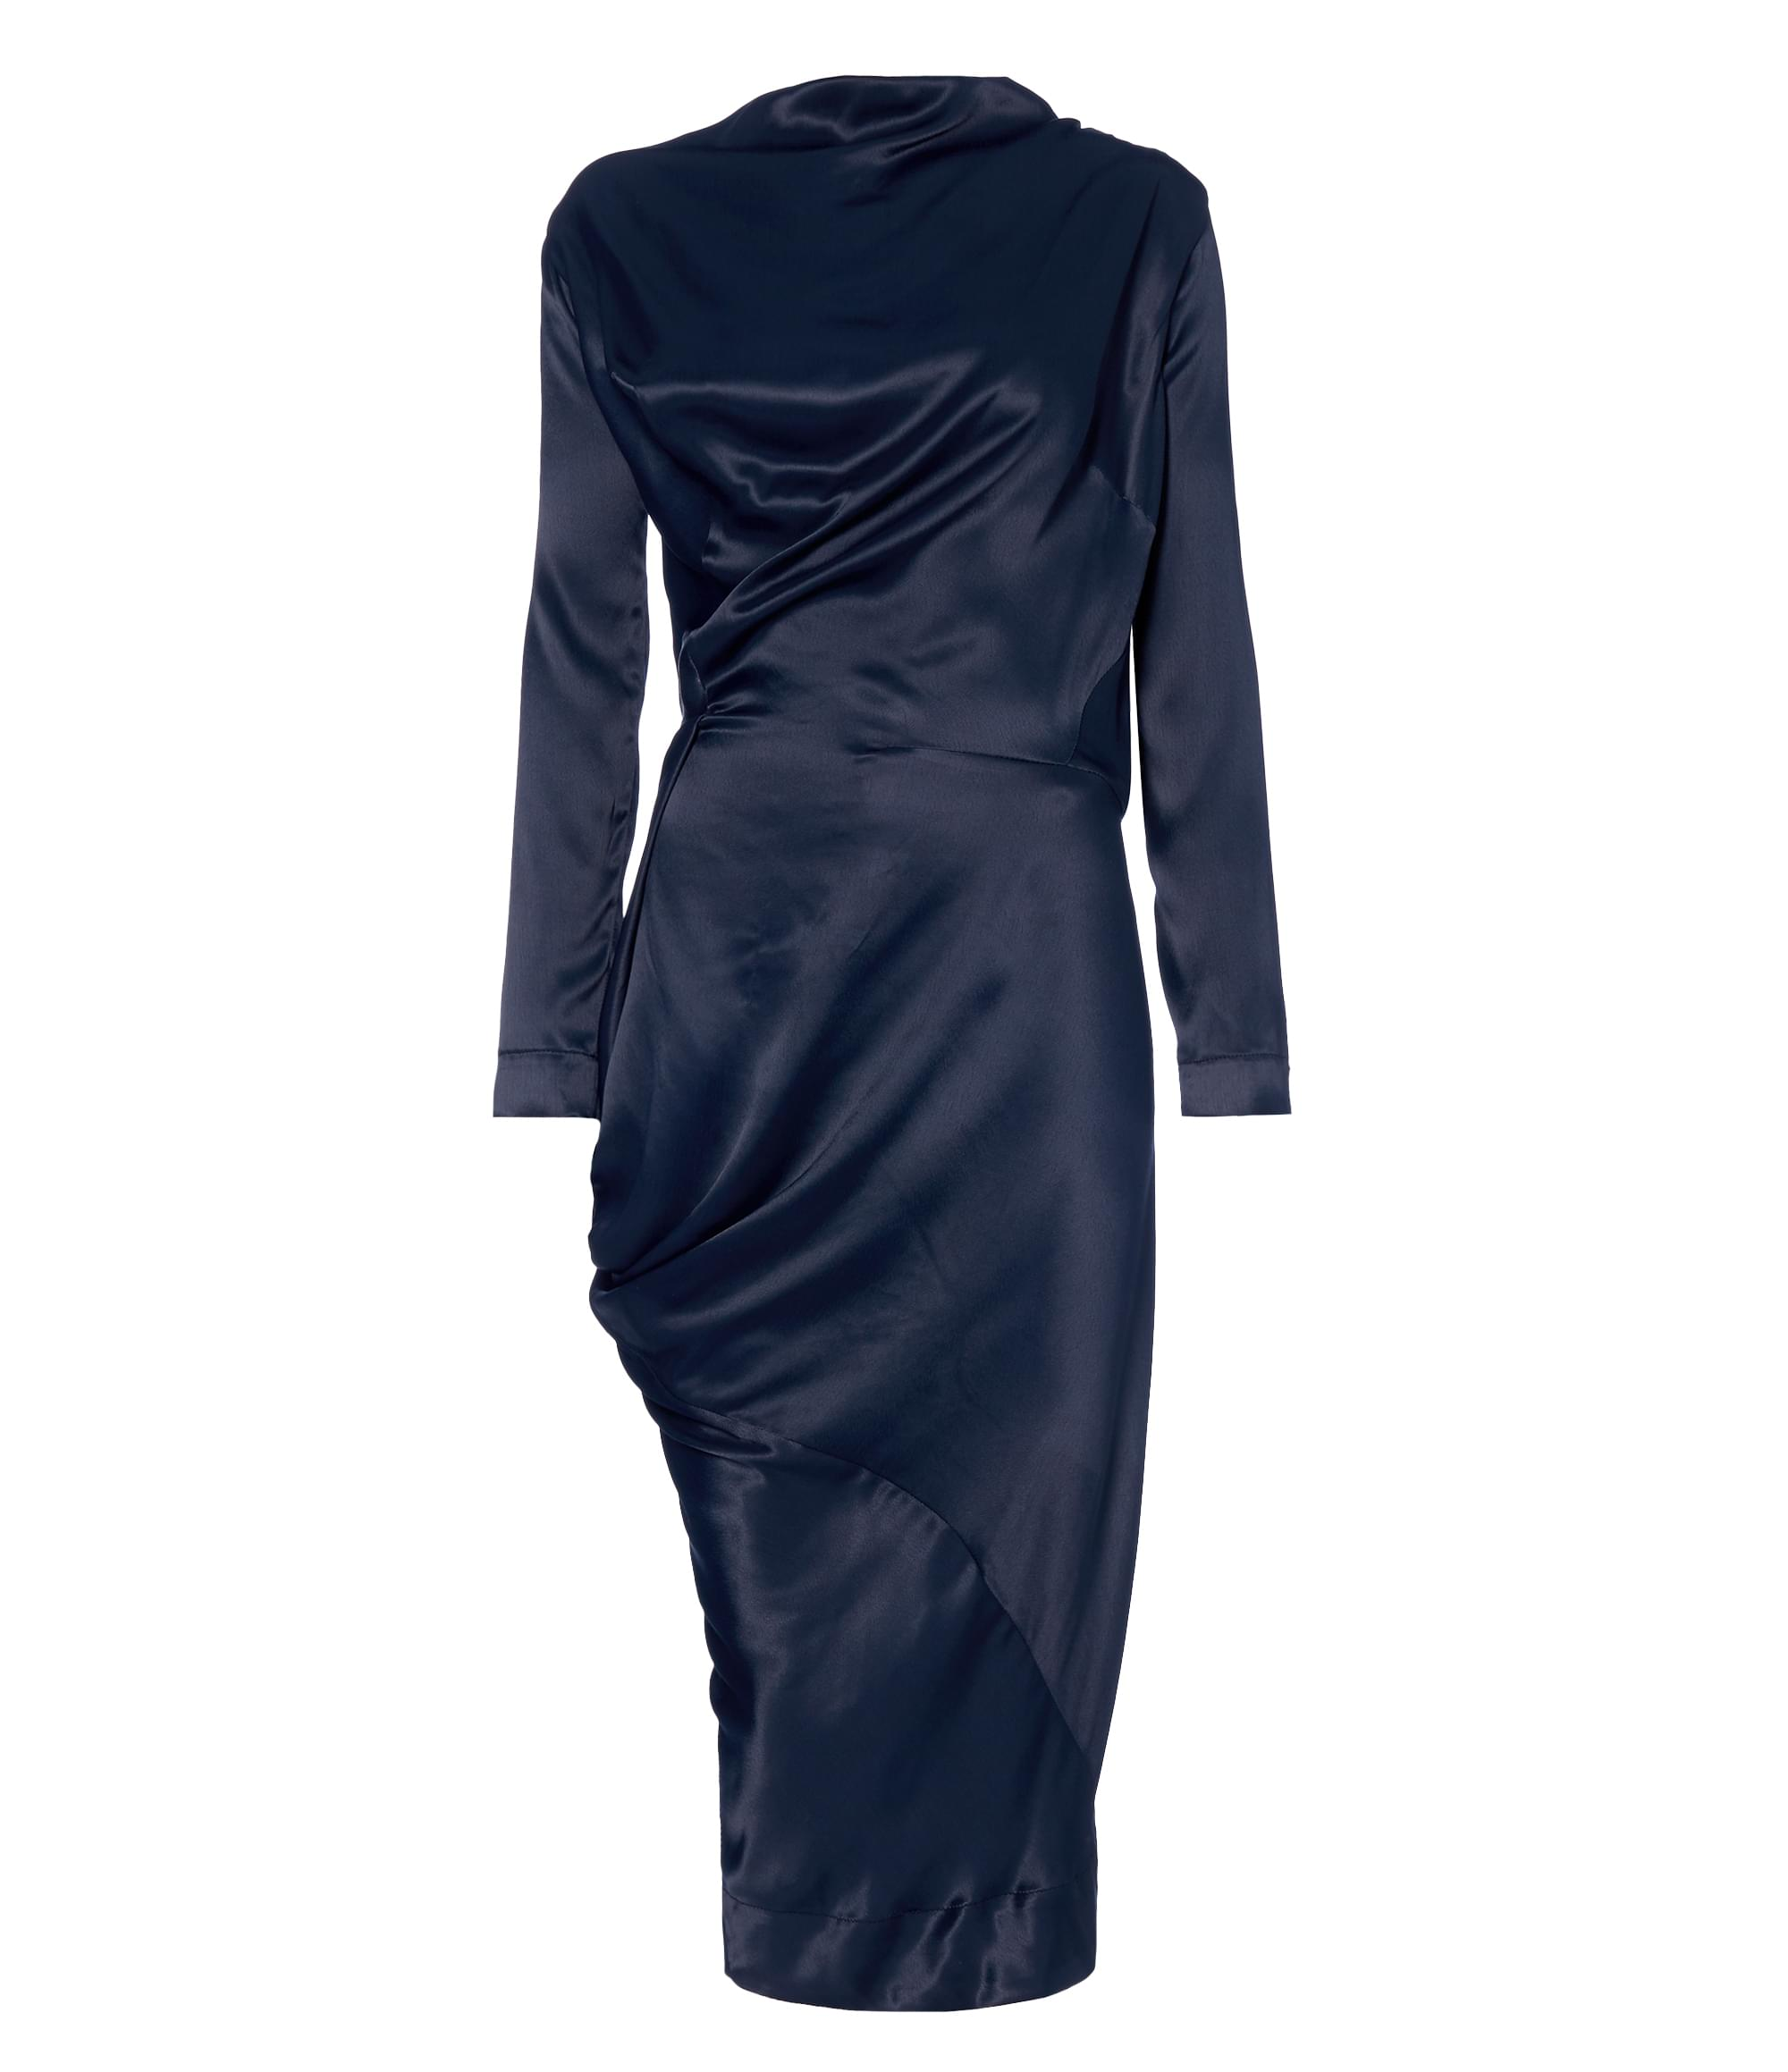 Vivienne Westwood New Fond Dress Navy